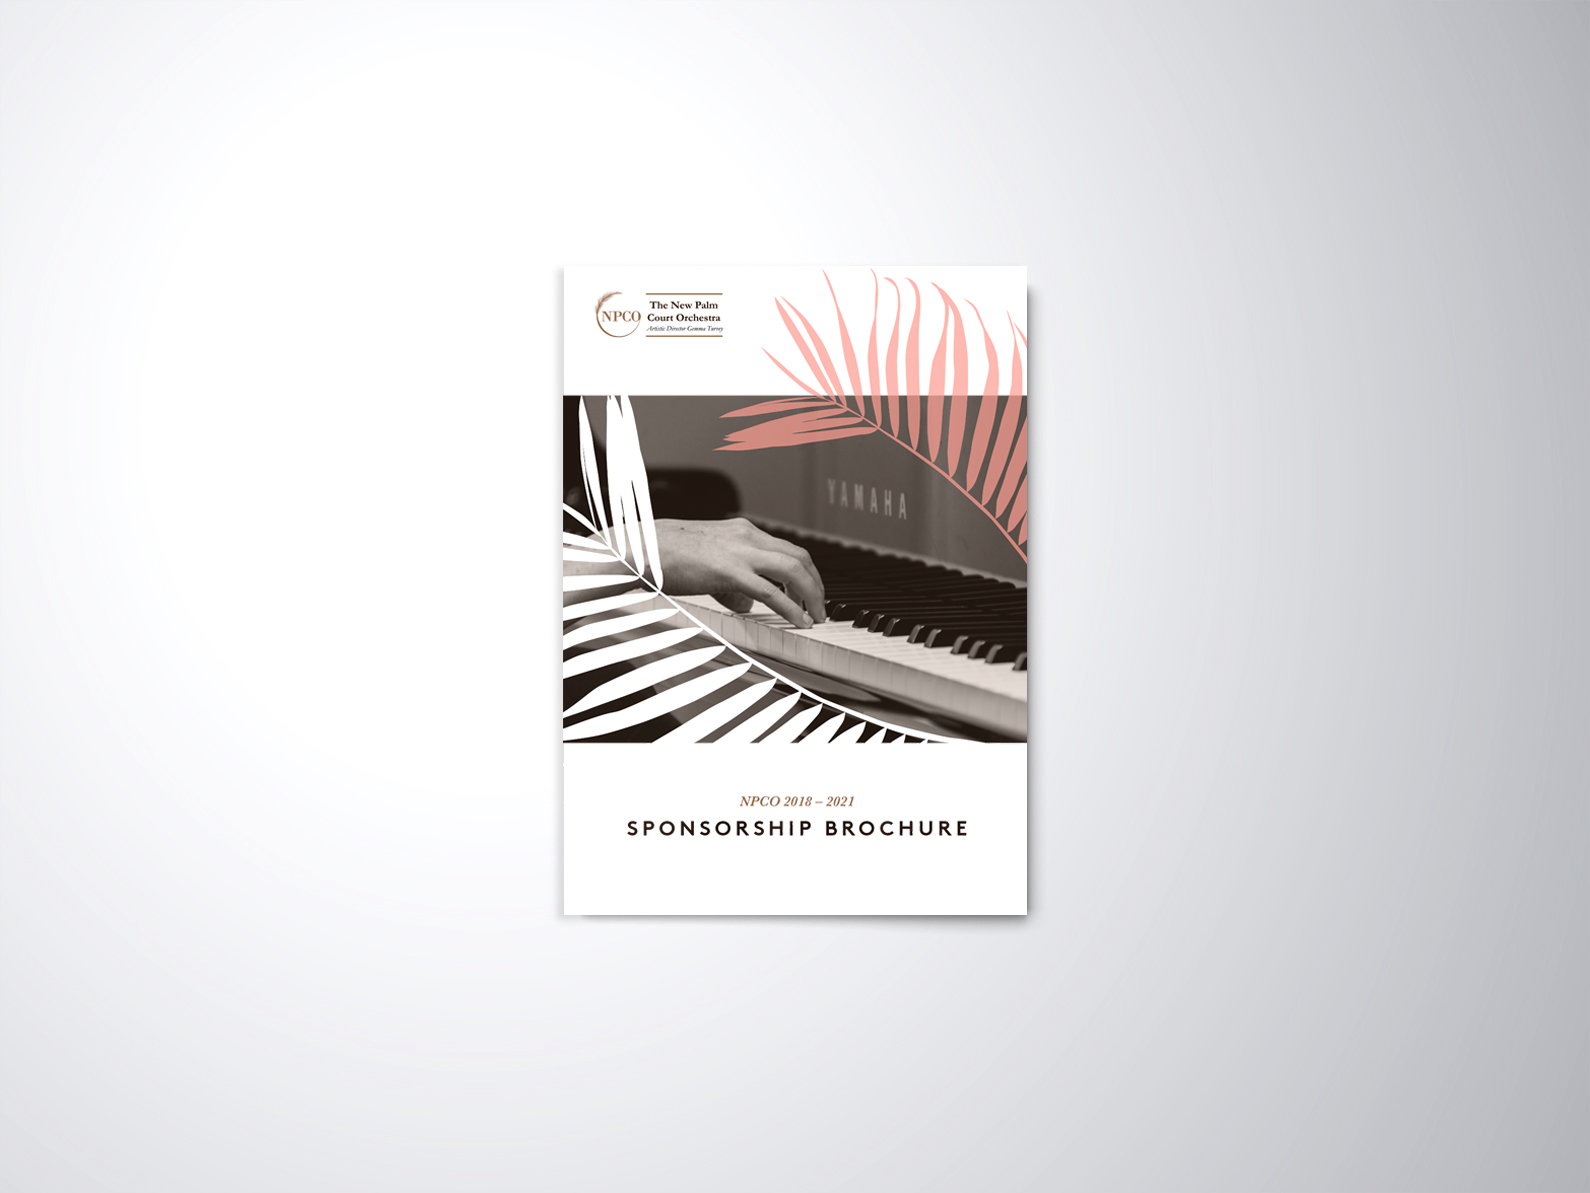 Studio-Mimi-Moon-New-Palm-Court-Orchestra-Brand-Identity-and-collateral-Sponsorship-Brochure